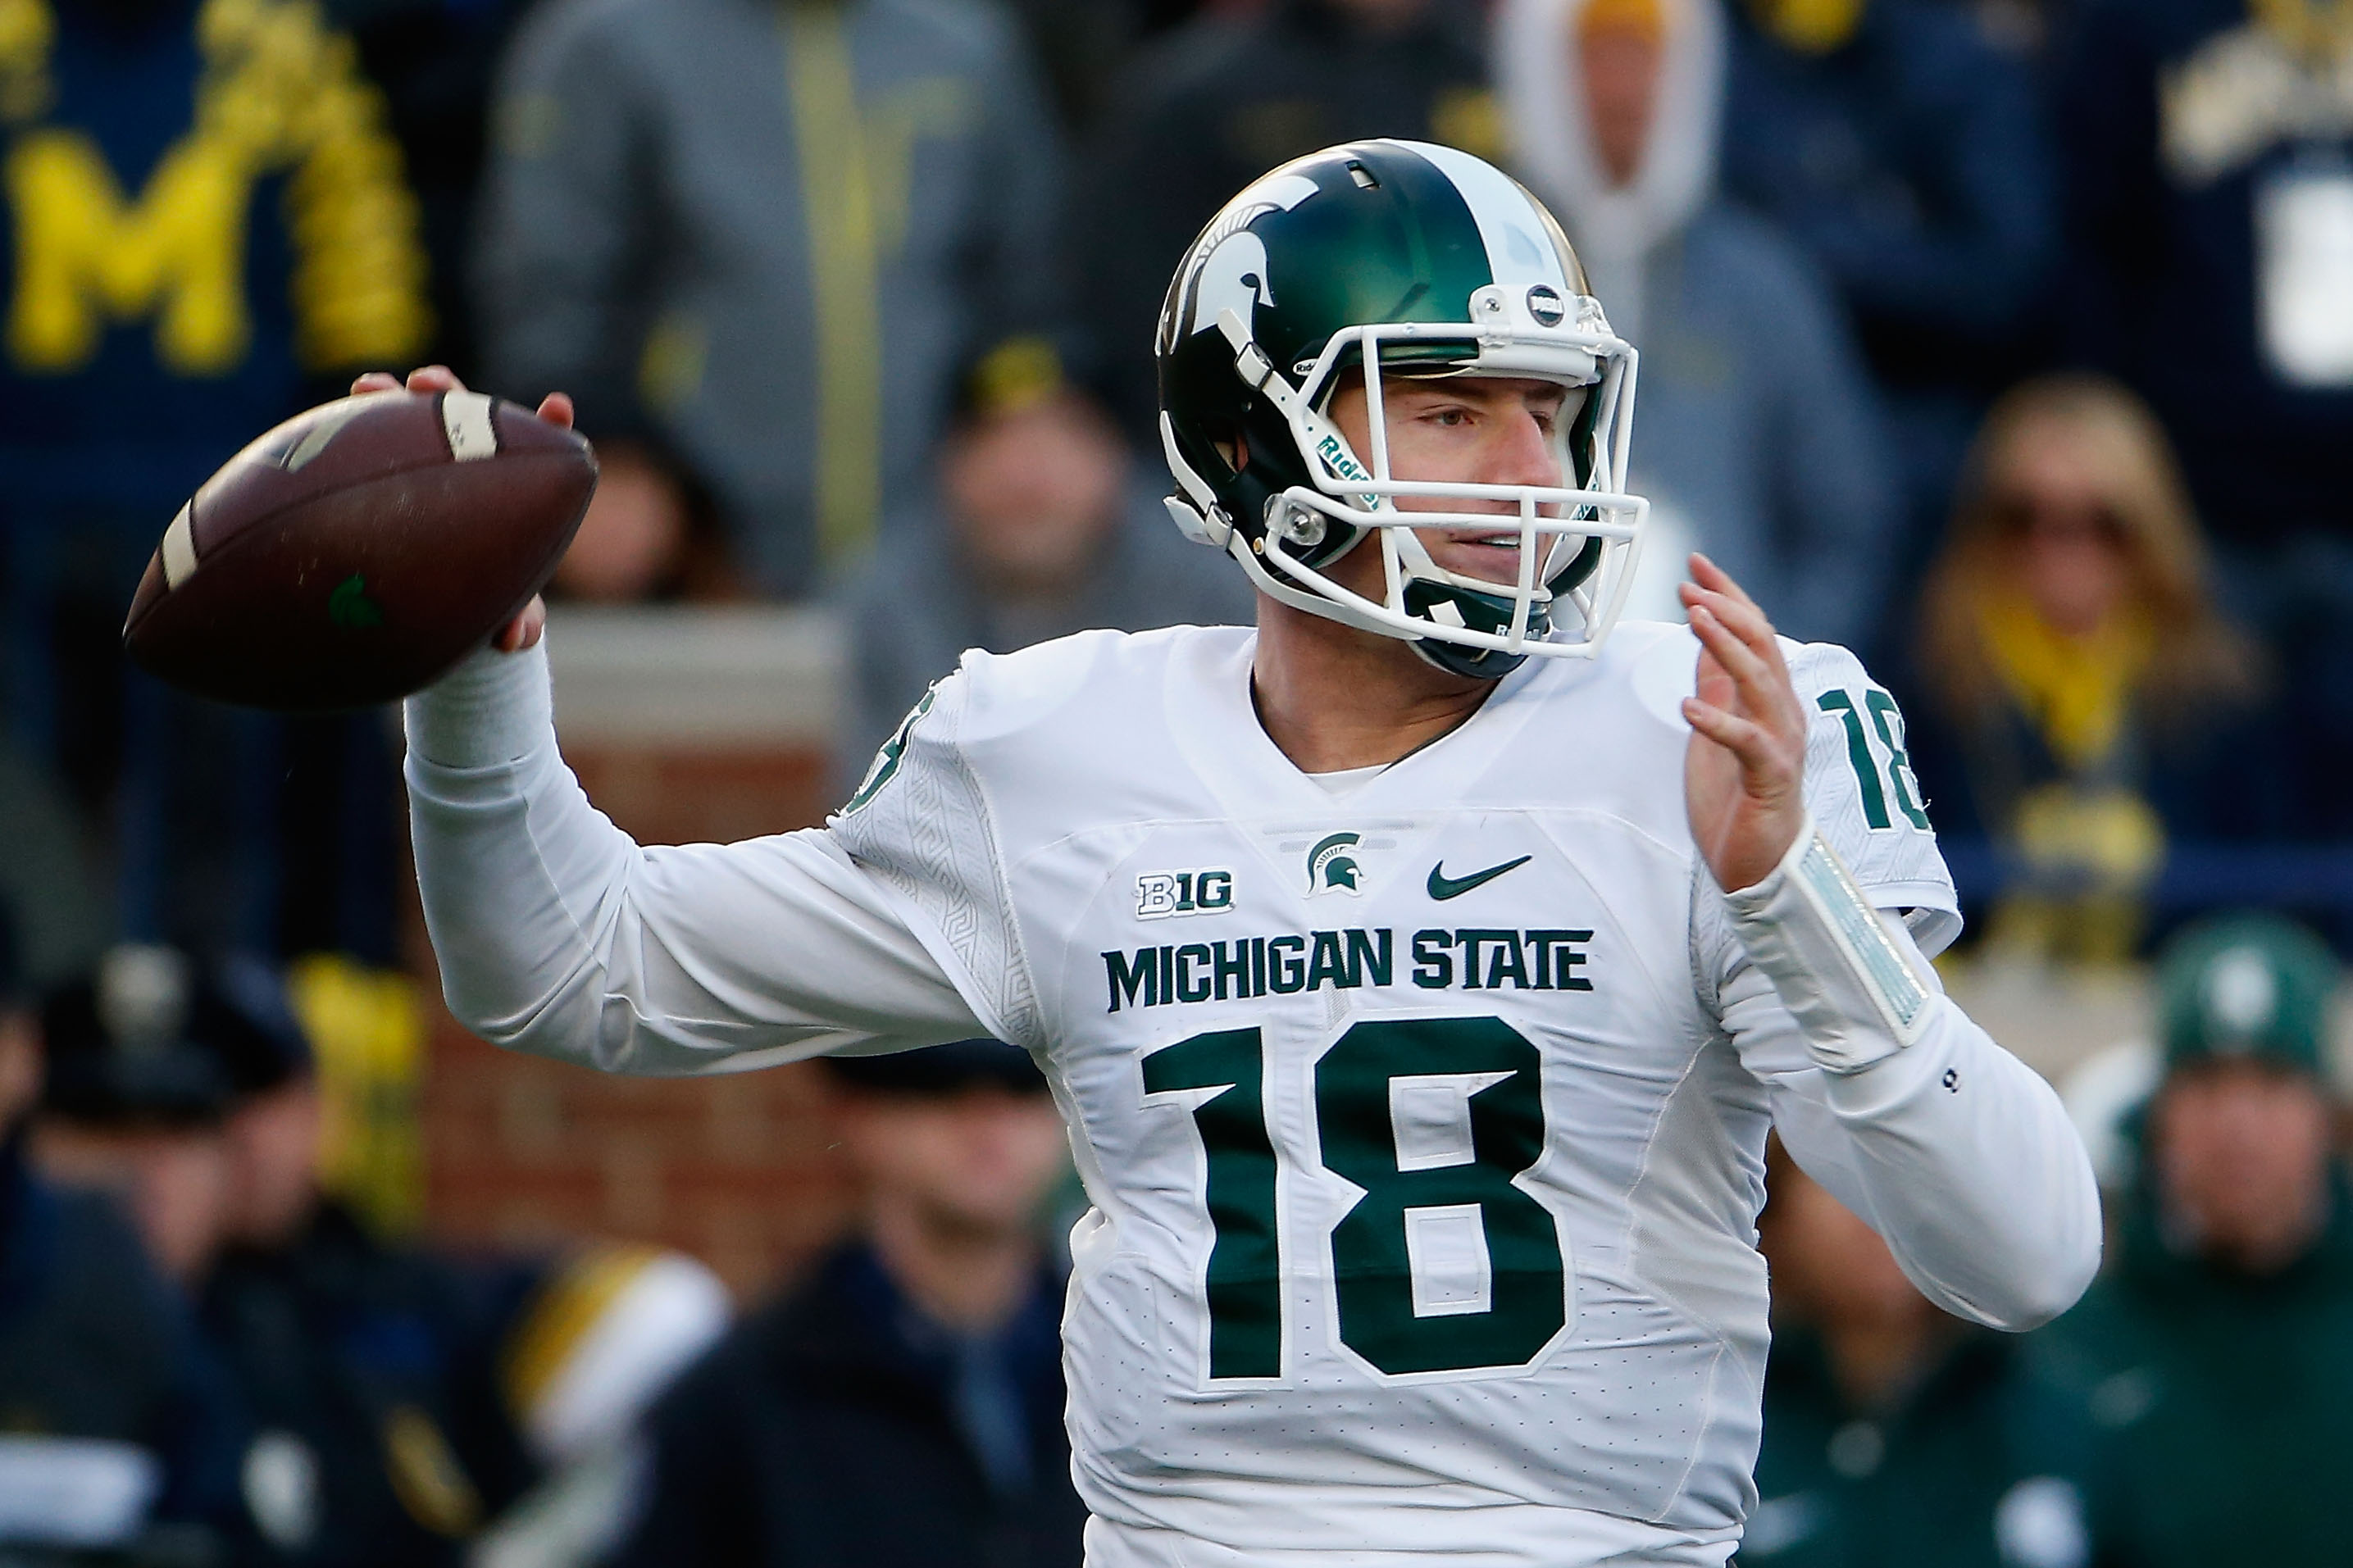 Quarterback Connor Cook of the Michigan State Spartans at Michigan Stadium on Oct. 17, 2015 in Ann Arbor, Michigan. (Photo by Christian Petersen/Getty Images)